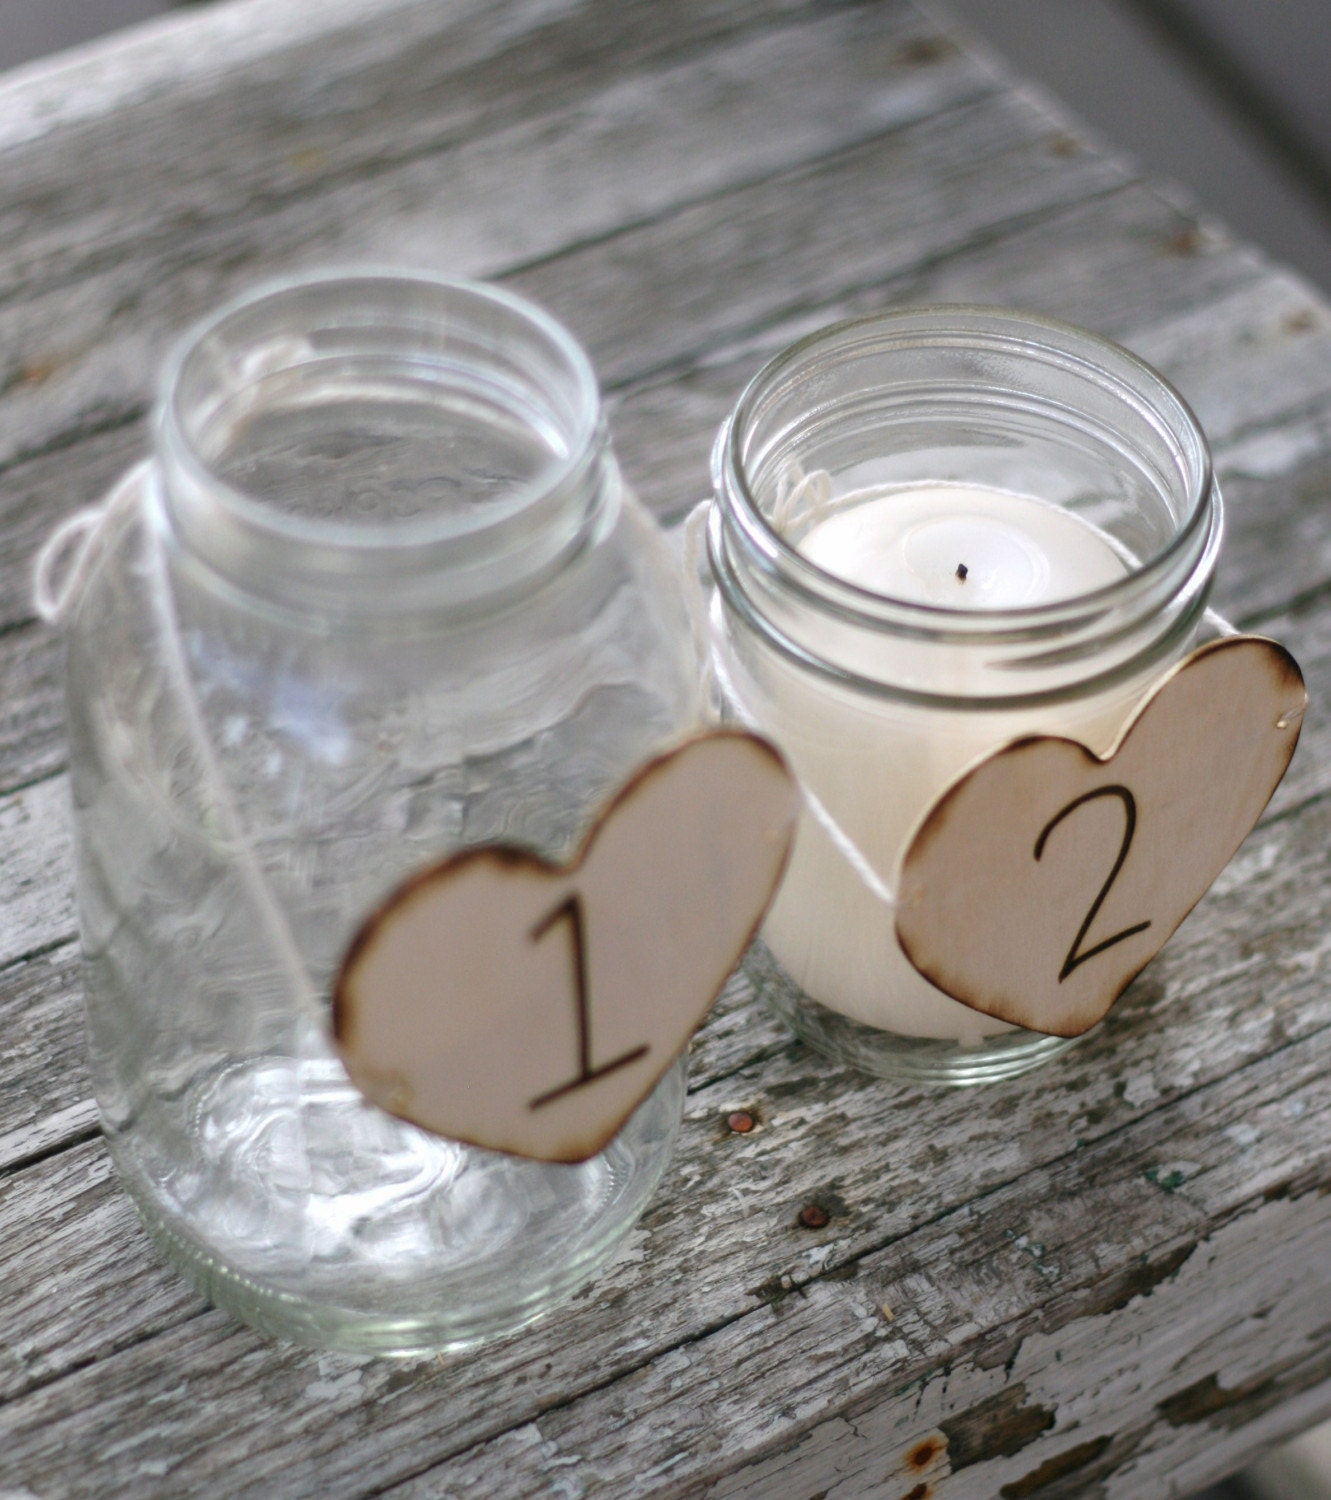 20 Wedding Centerpiece Table Number Charms Engraved Wood Hearts Rustic Woodland Cinderella Renaissance Fairytale